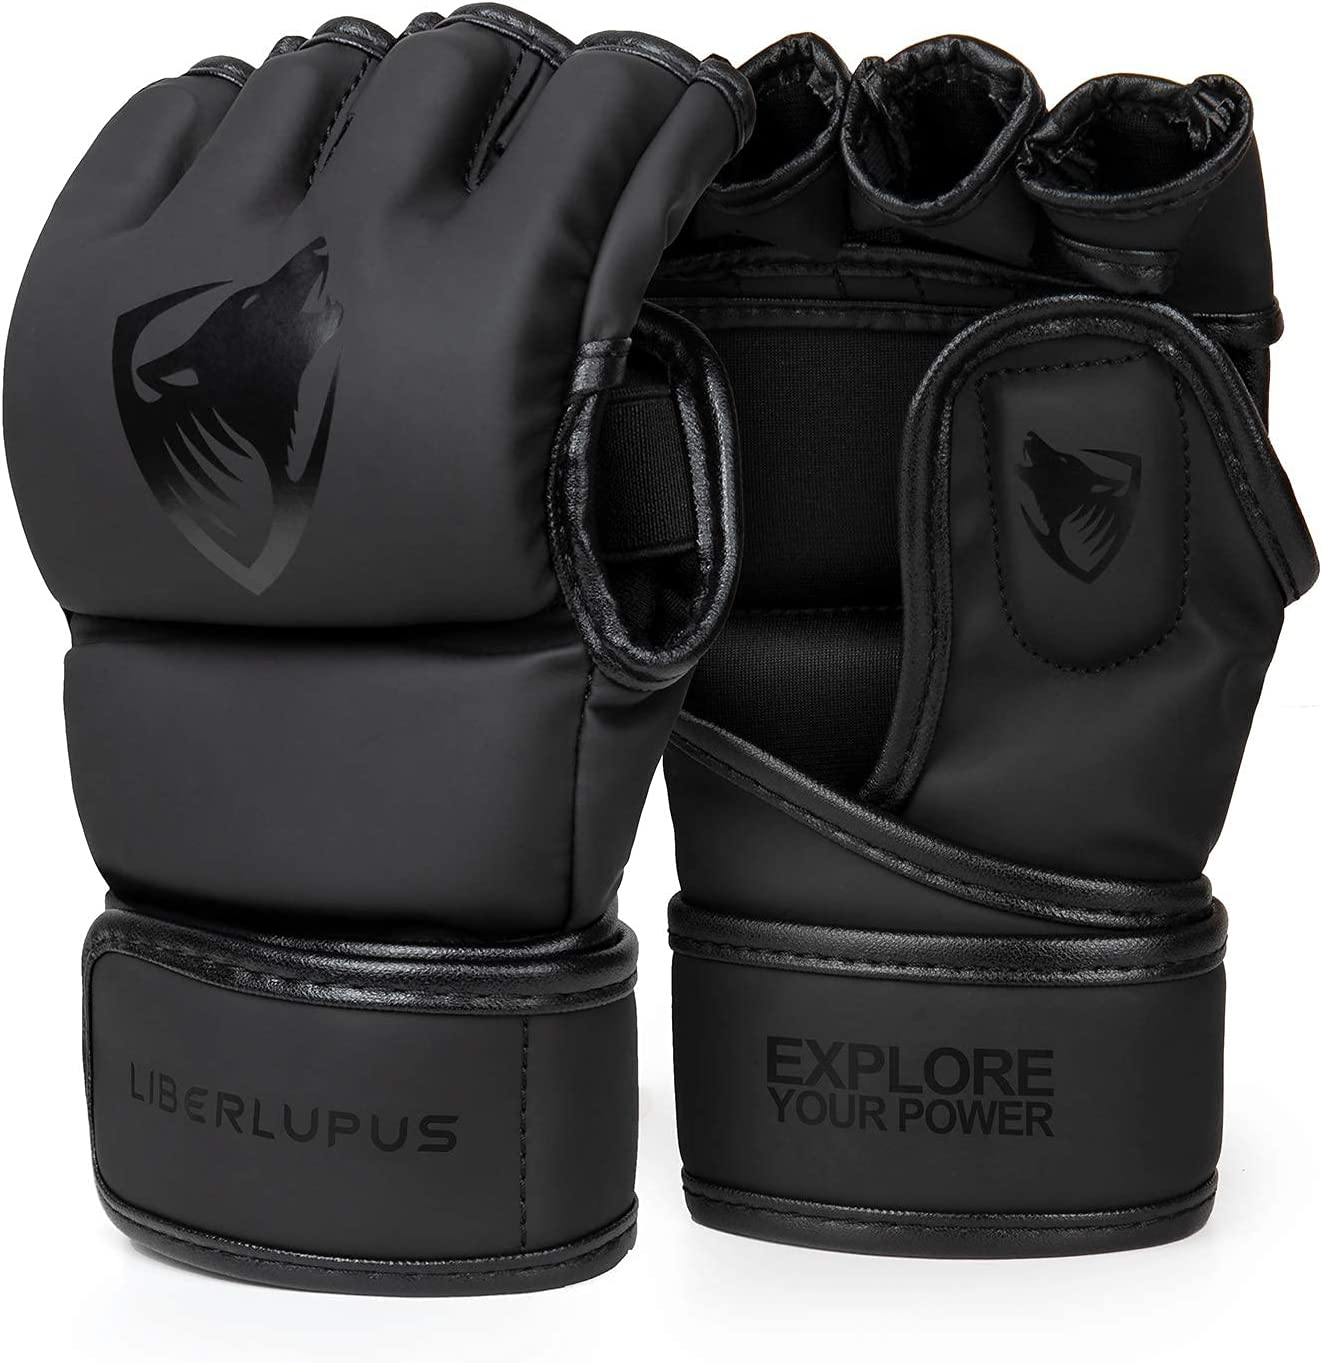 Liberlupus MMA Max 45% OFF Gloves for Men with Kickboxing Op Discount is also underway Women